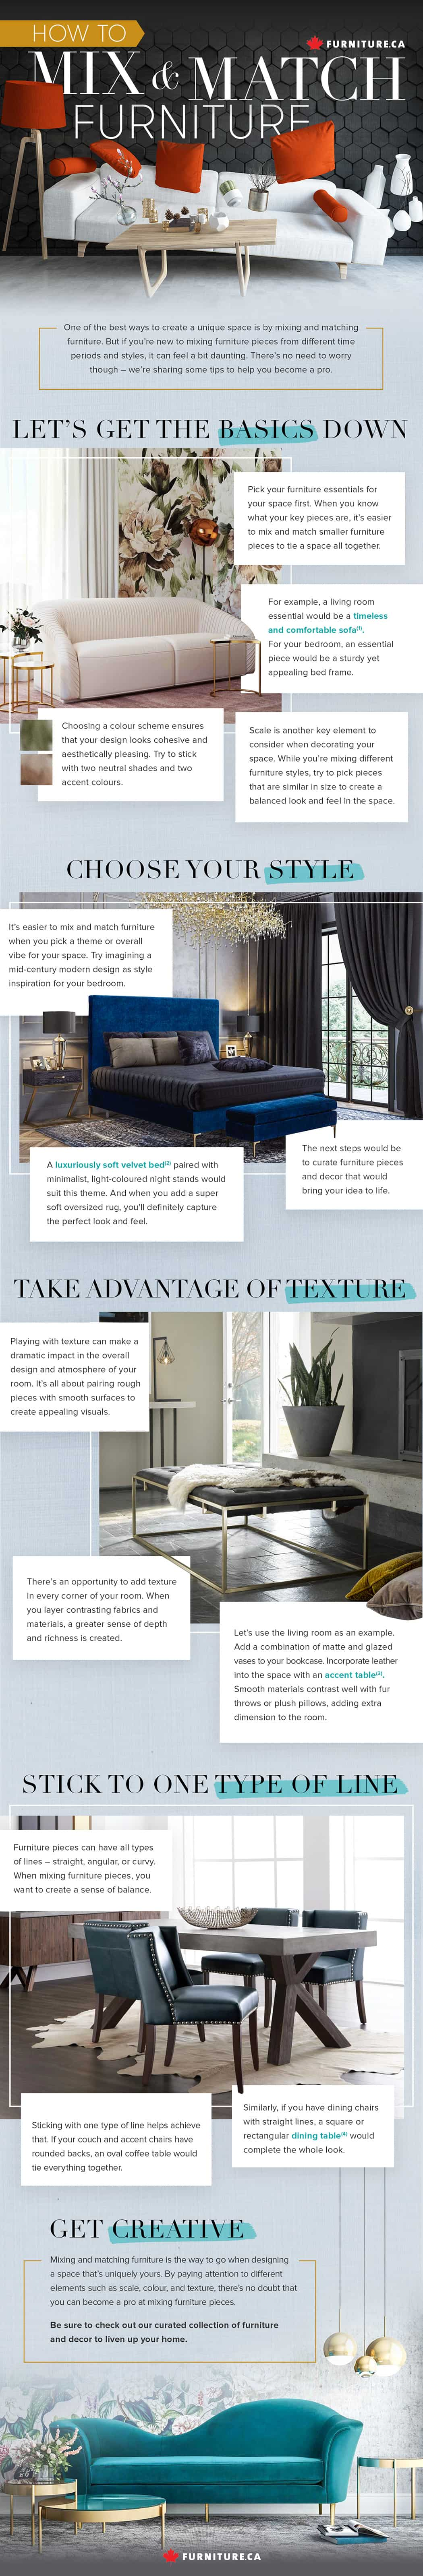 How to Mix and Match Furniture